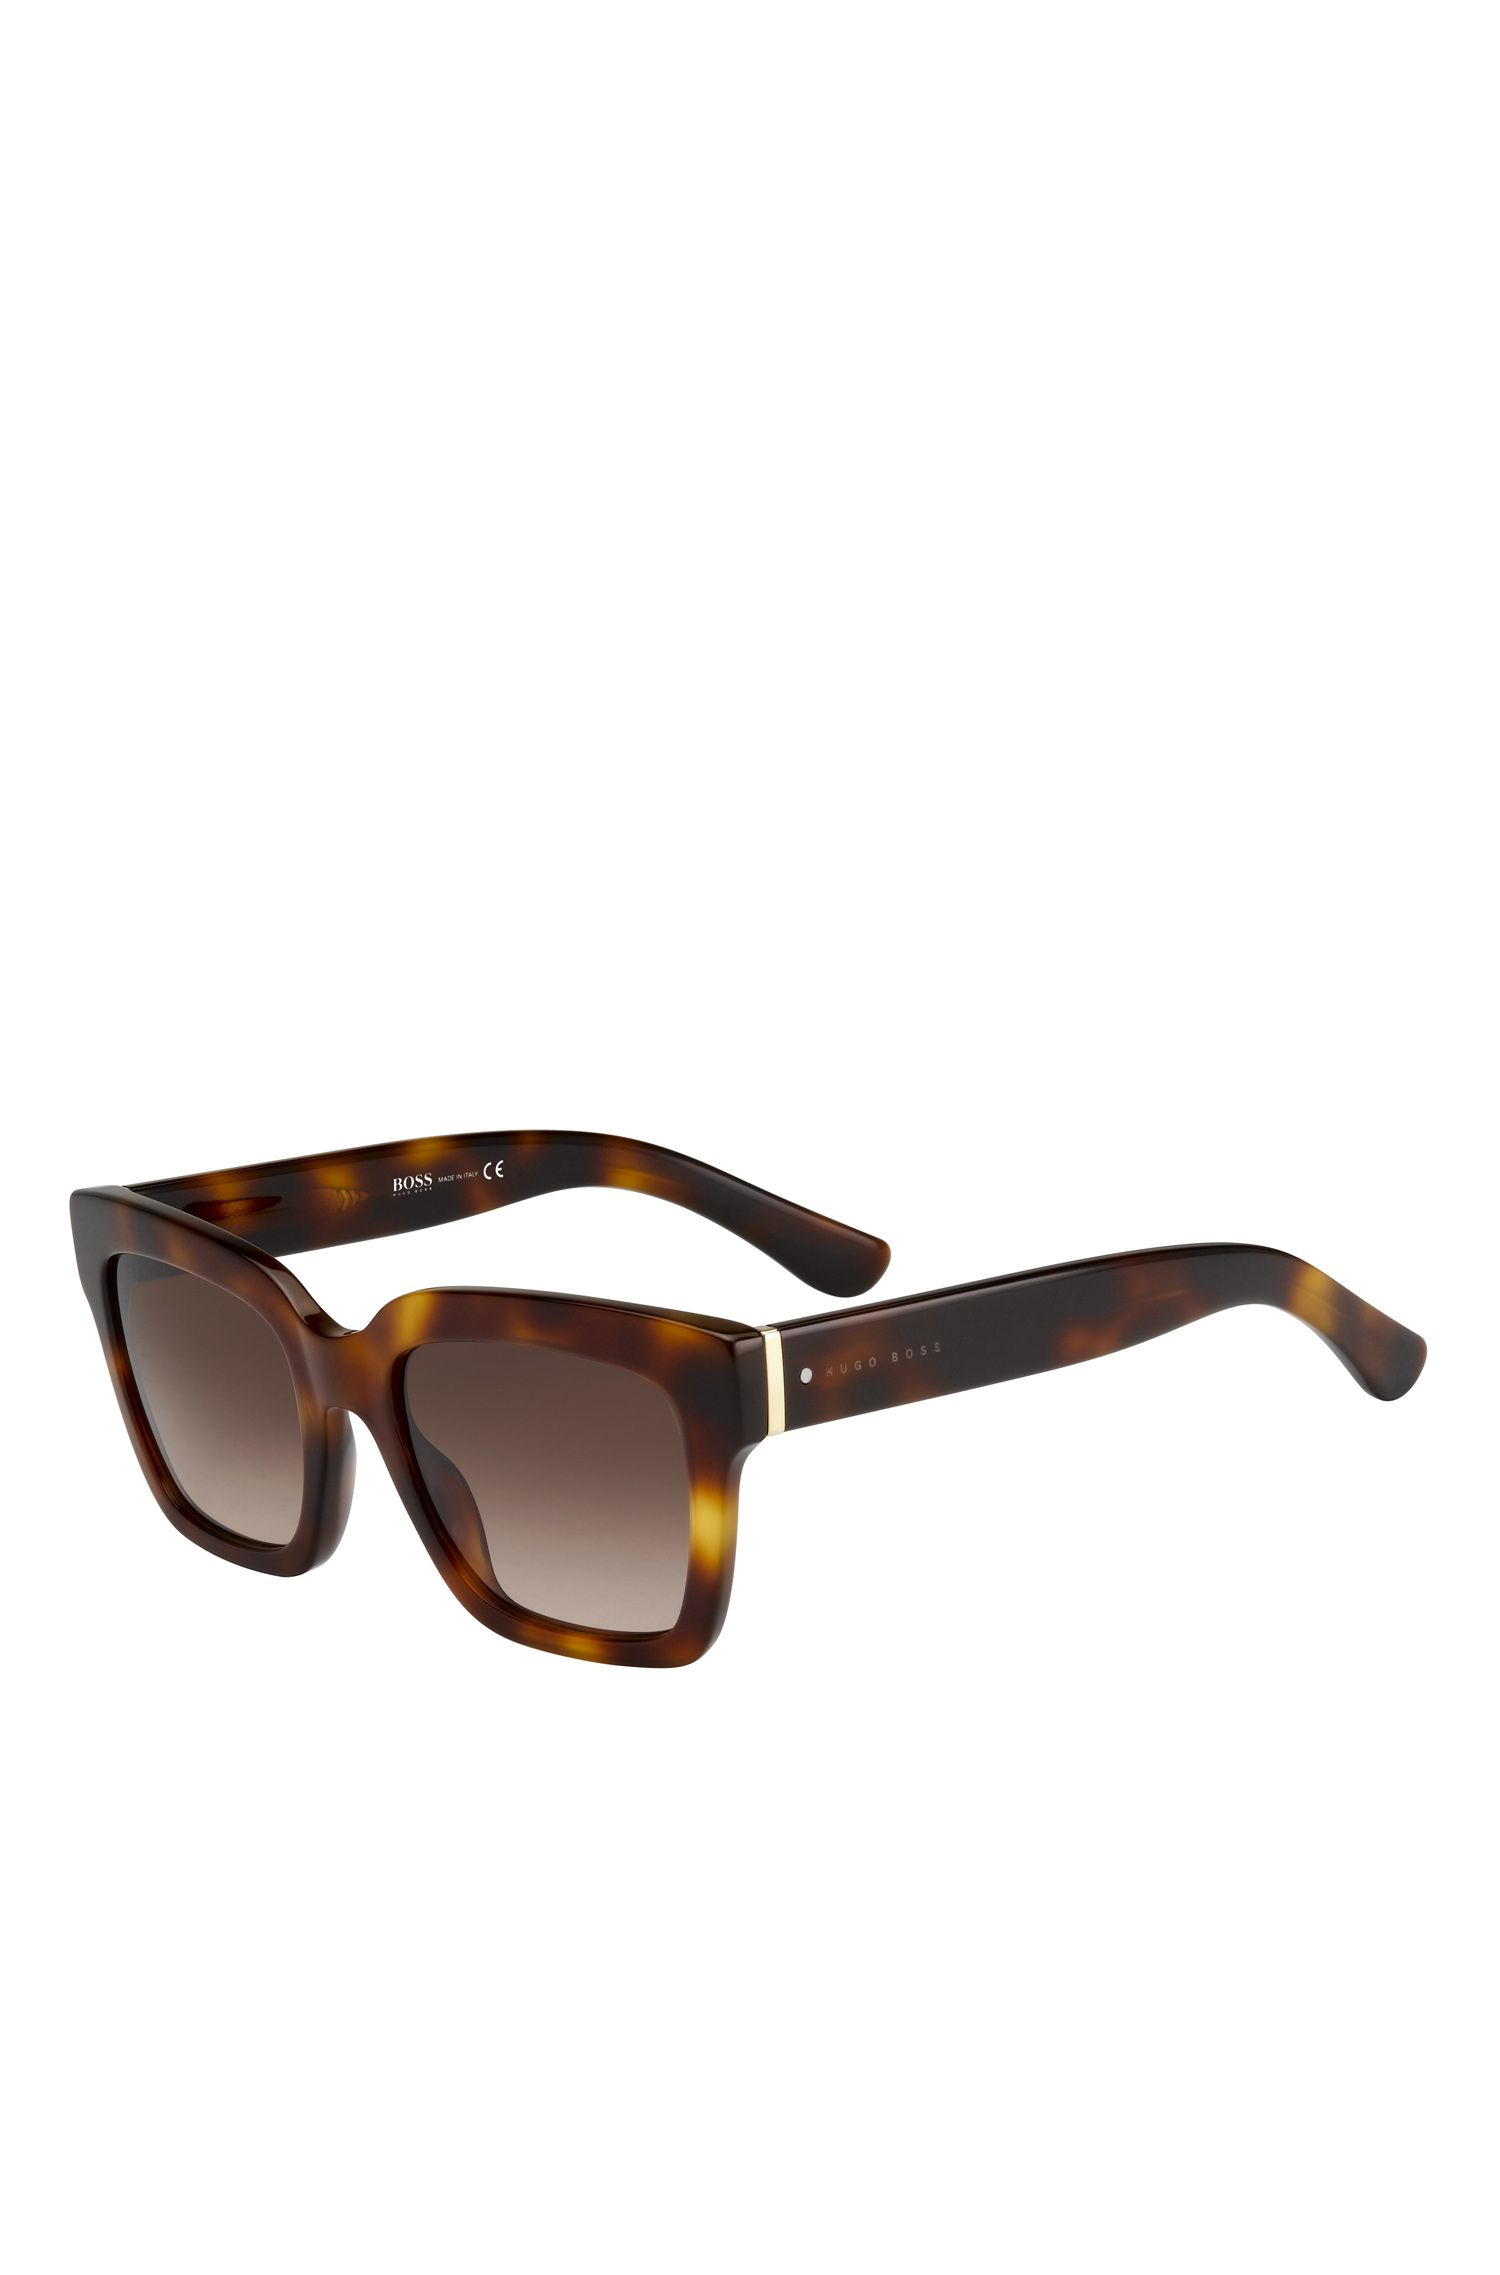 'BOSS 0674S' | Brown Gradient Lens Rectangular Sunglasses